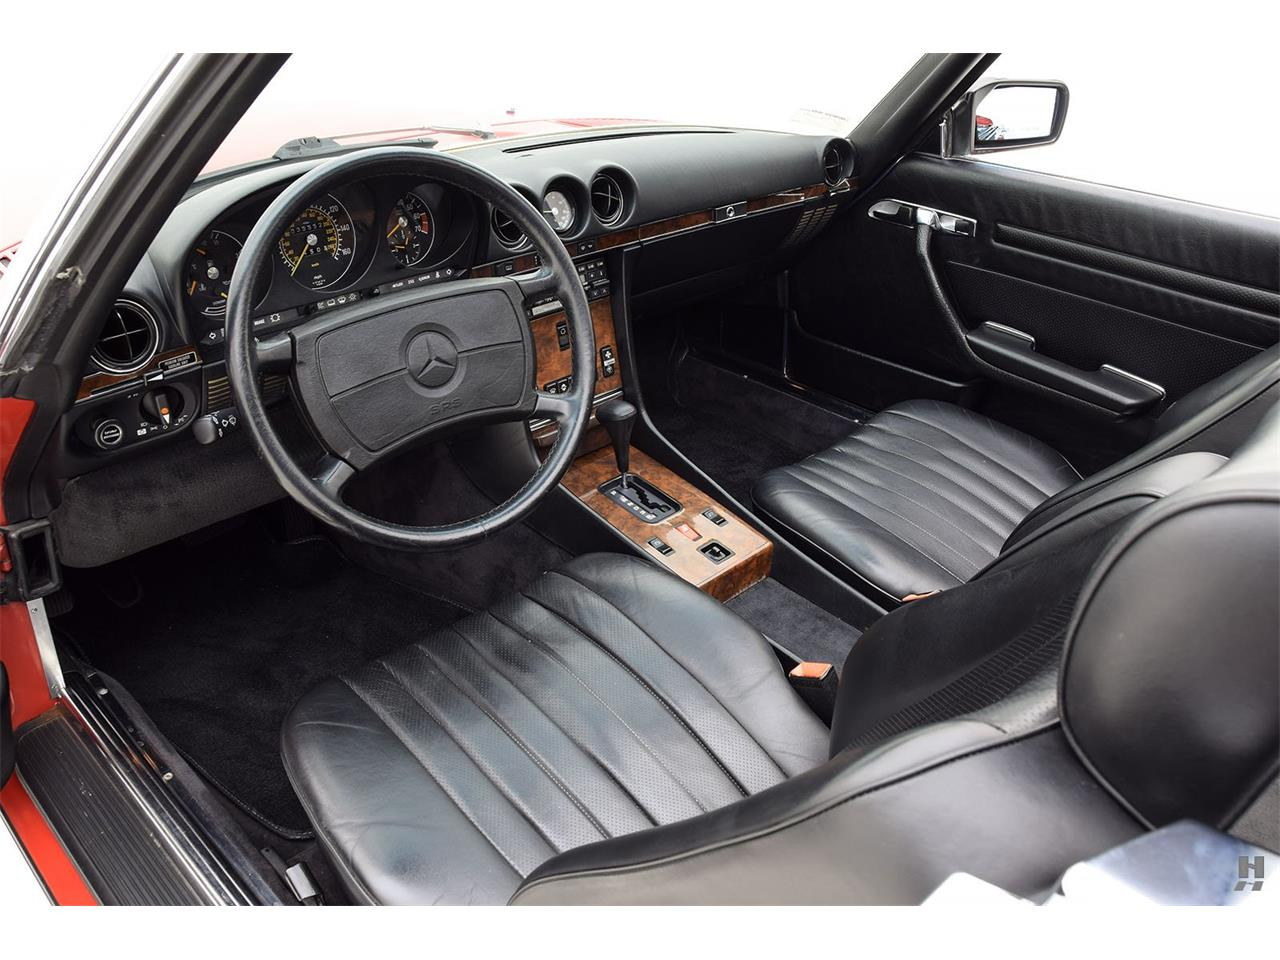 1987 Mercedes-Benz 560SL for sale in Saint Louis, MO – photo 36